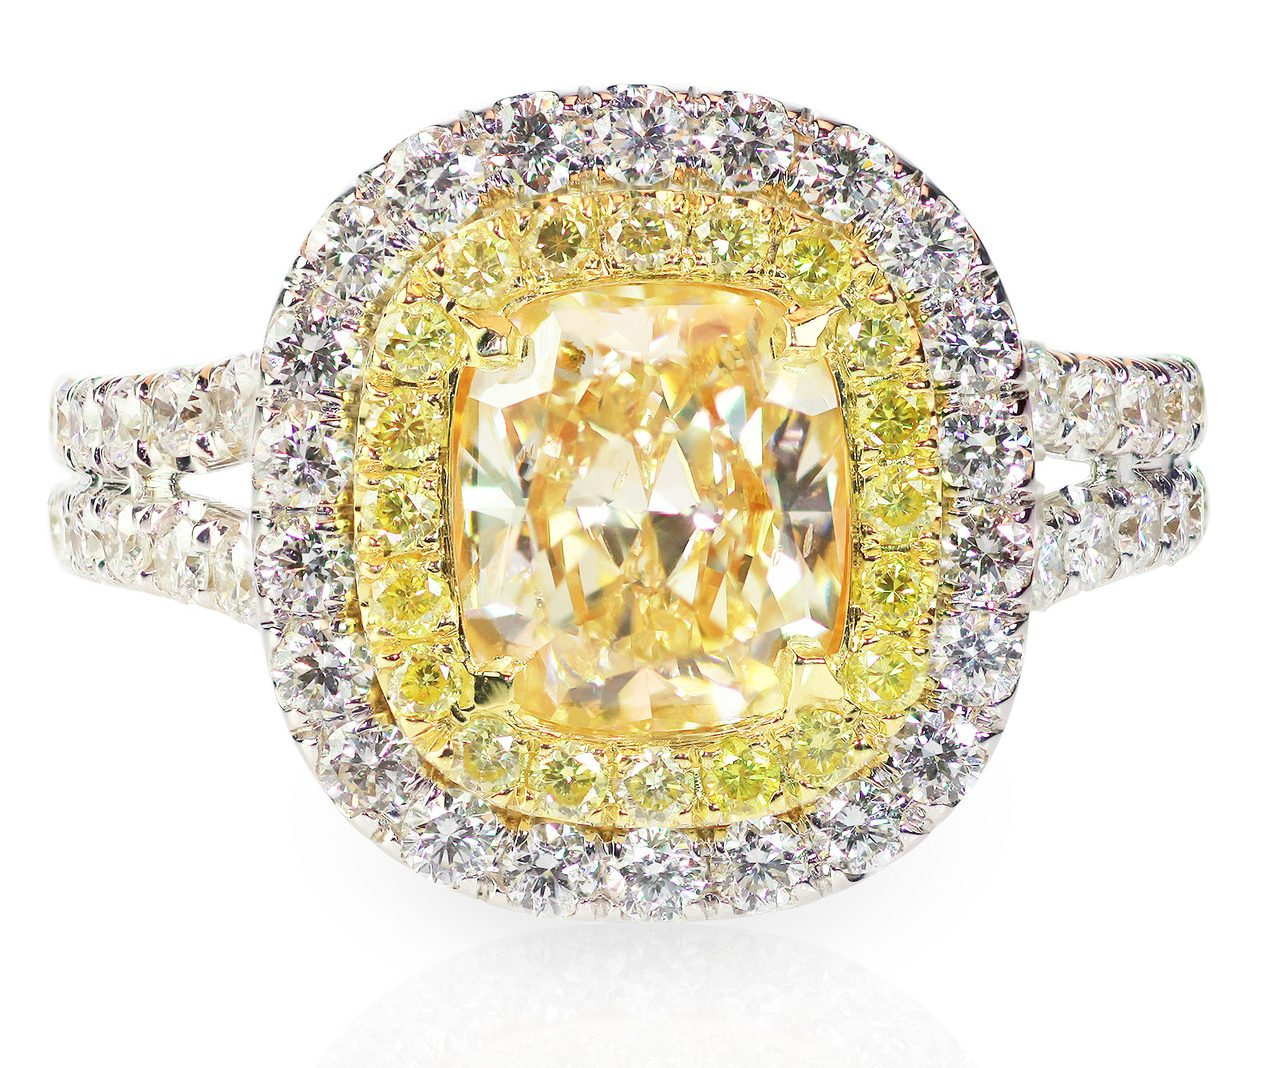 Three tone yellow canary diamond engagement ring with a double halo setting.